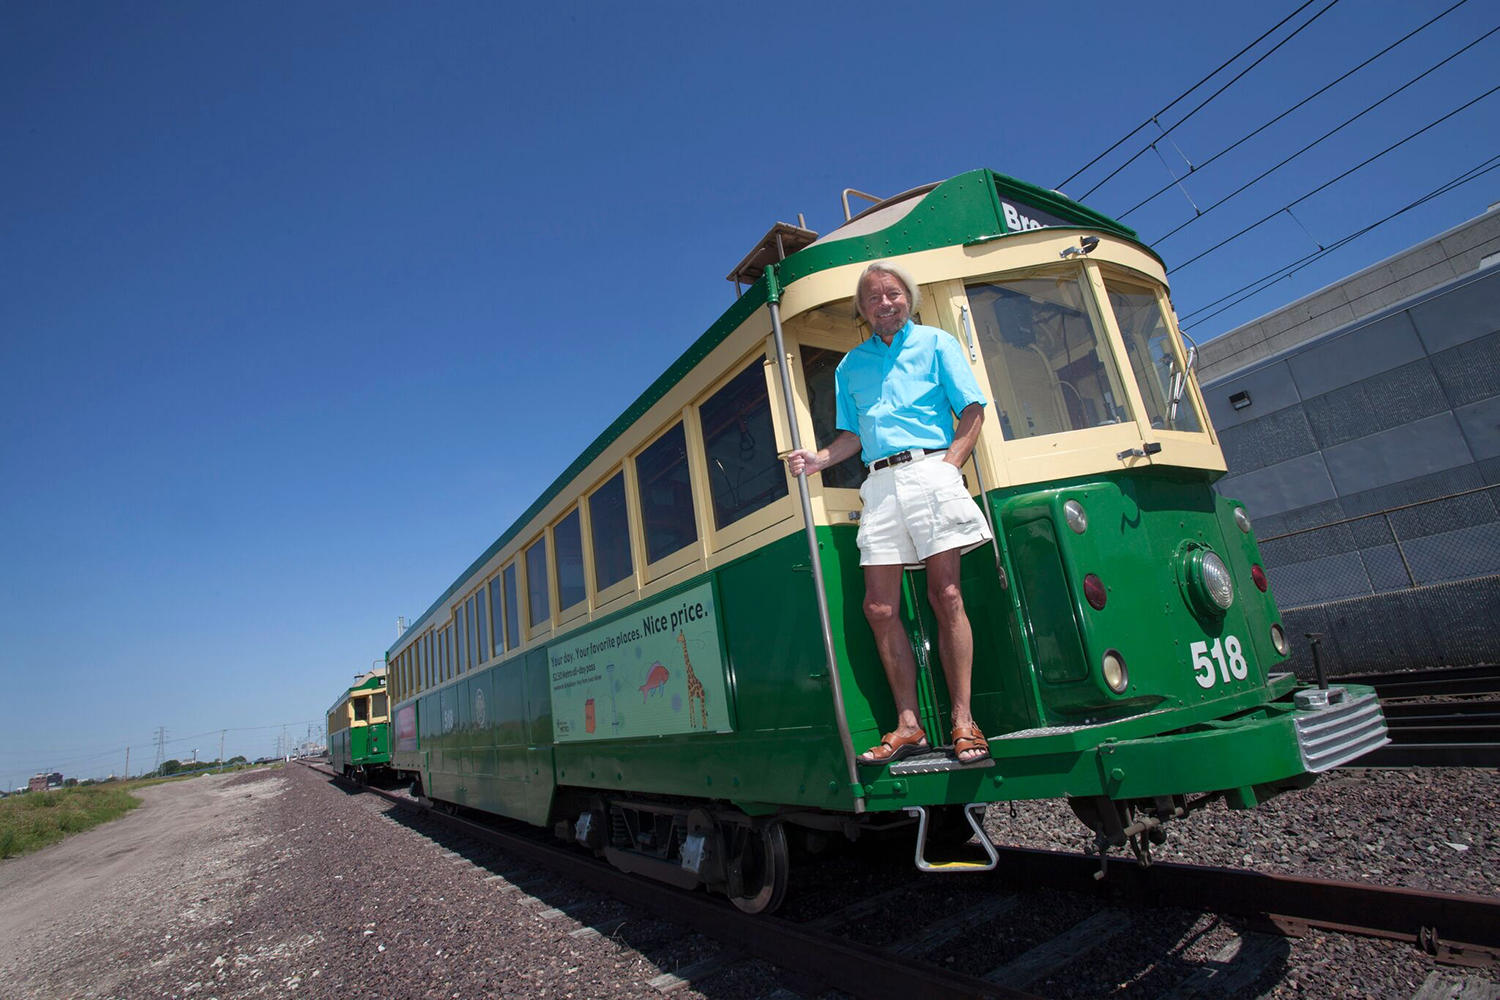 Trolley Car: Loop Trolley Cars Delayed But Project Still On Track